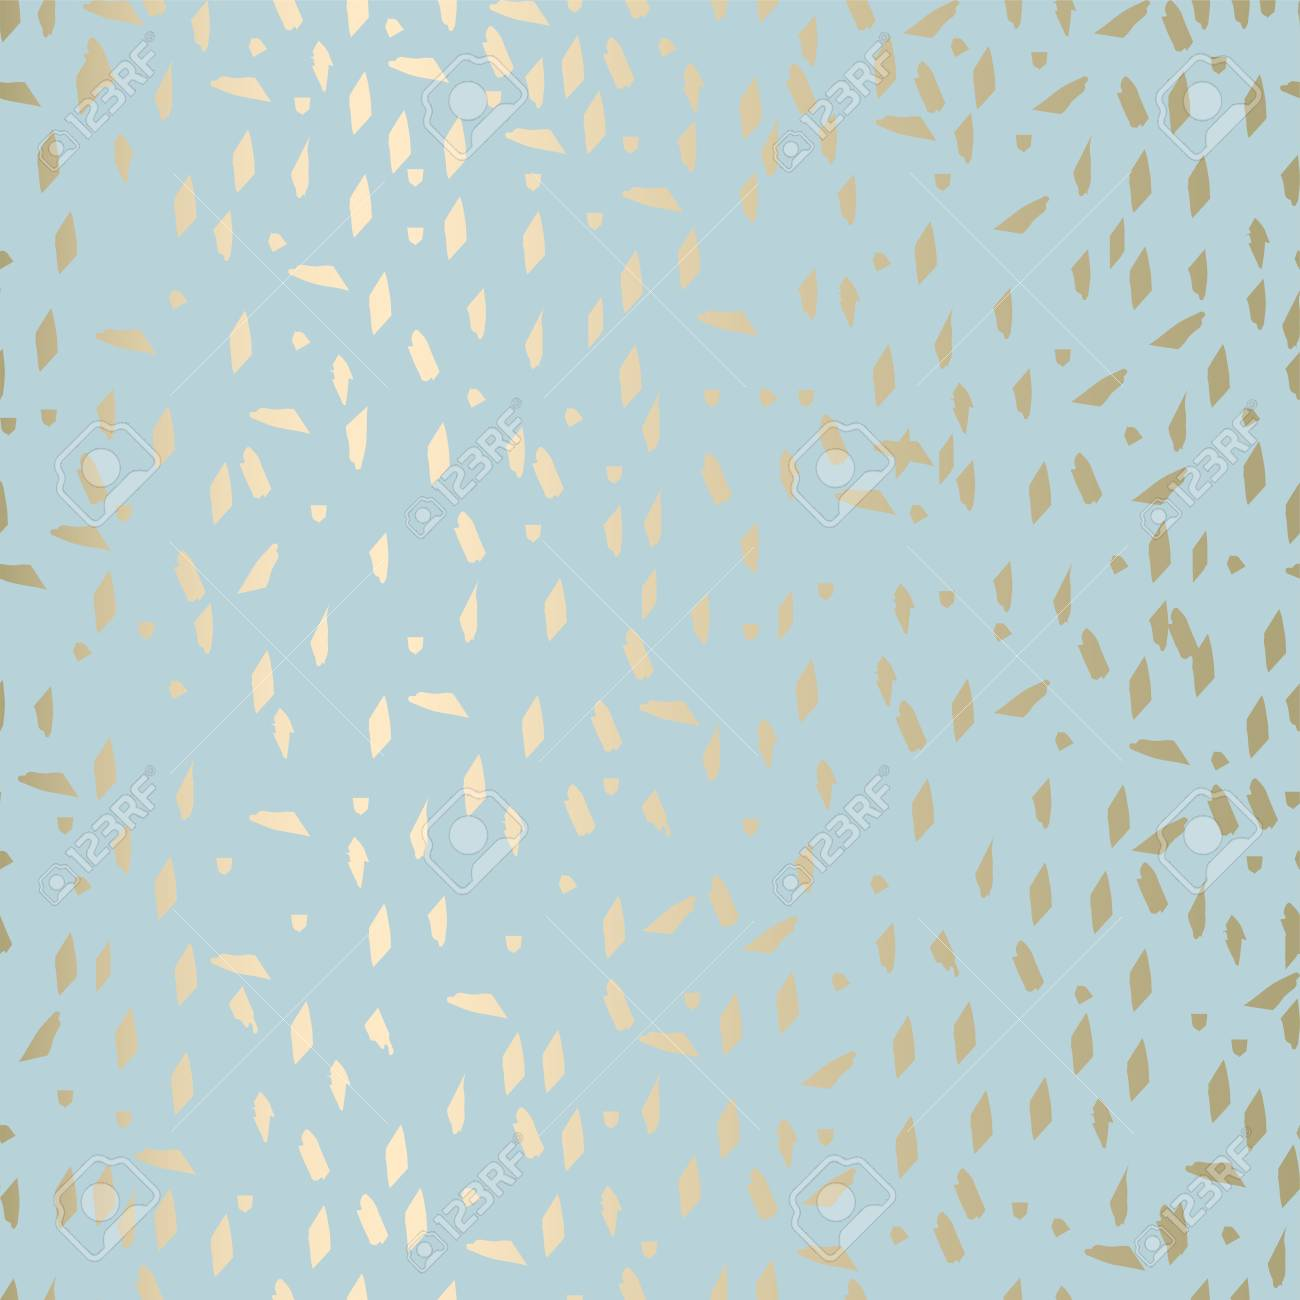 Trendy abstract gold and pastel pattern in terrazzo style. Wallpaper, textile, party invitation